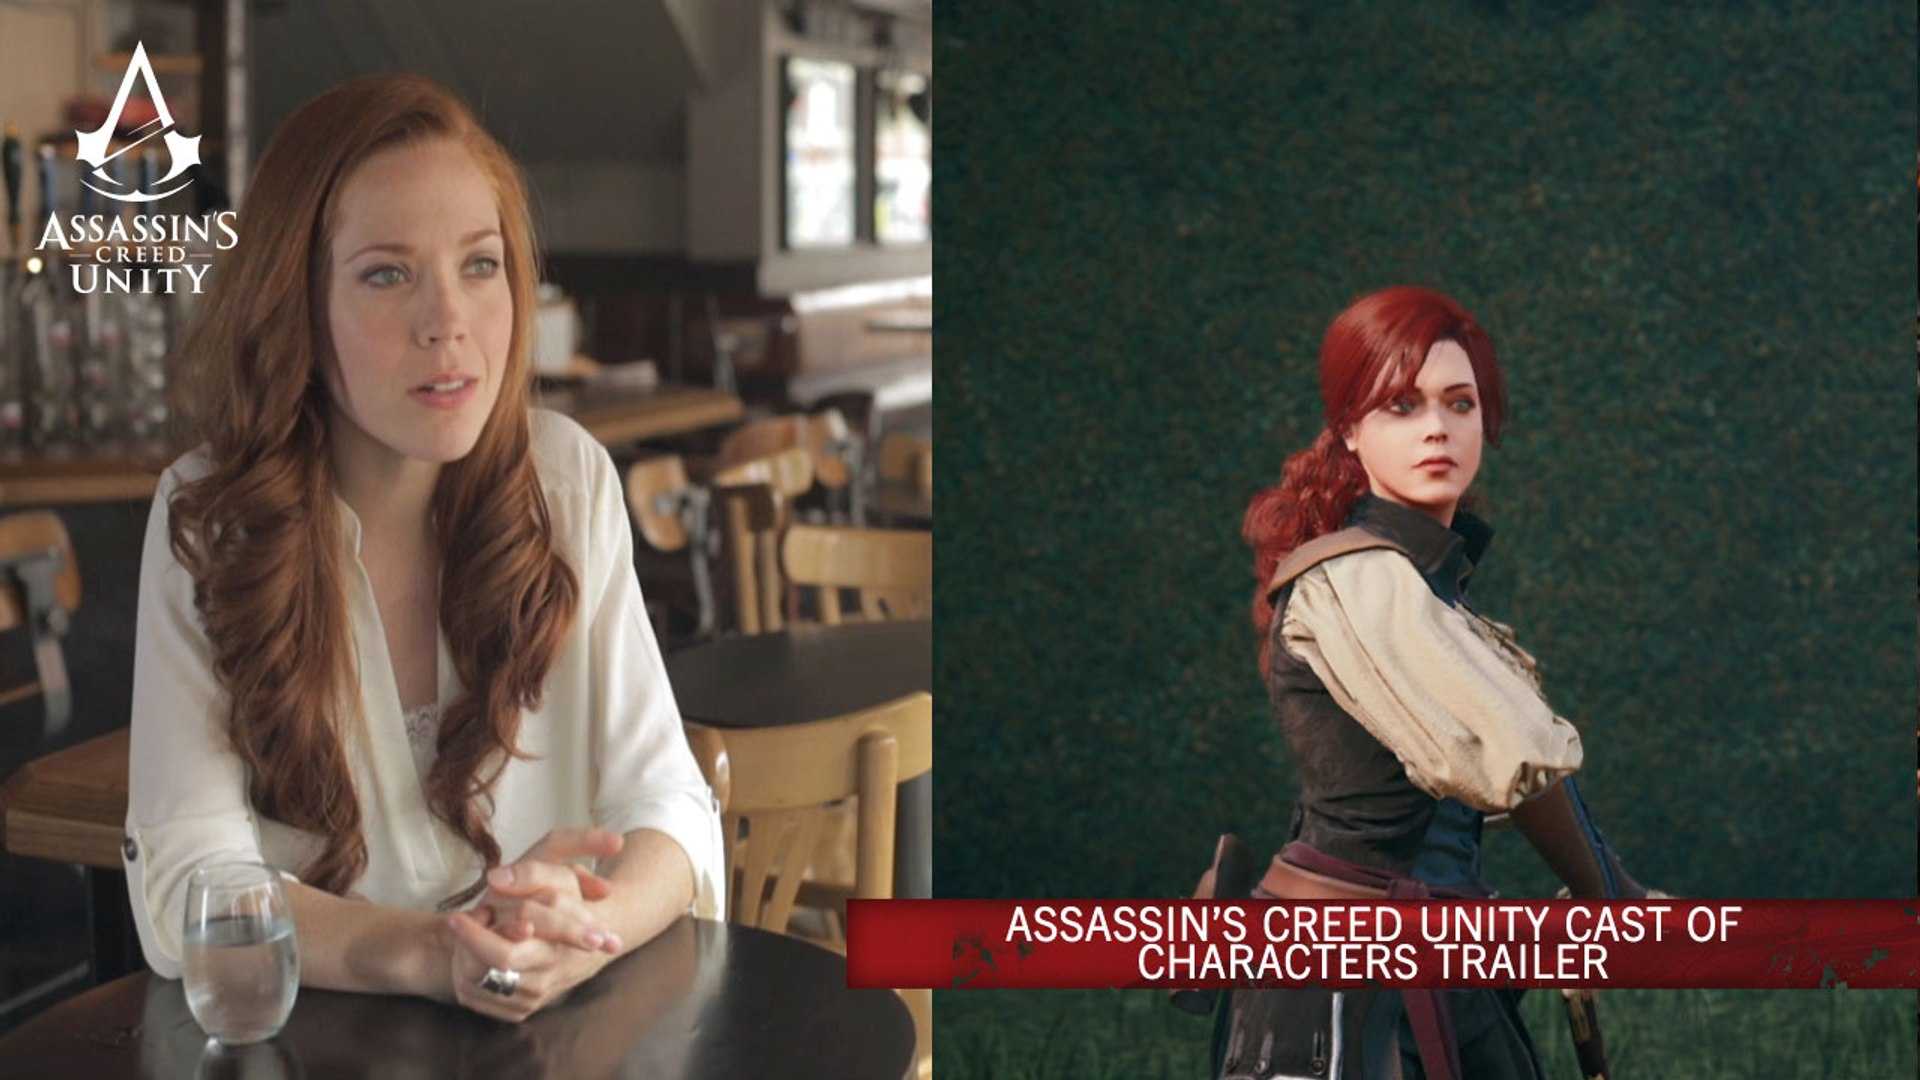 Assassin S Creed Unity Cast Of Characters Trailer Video Dailymotion